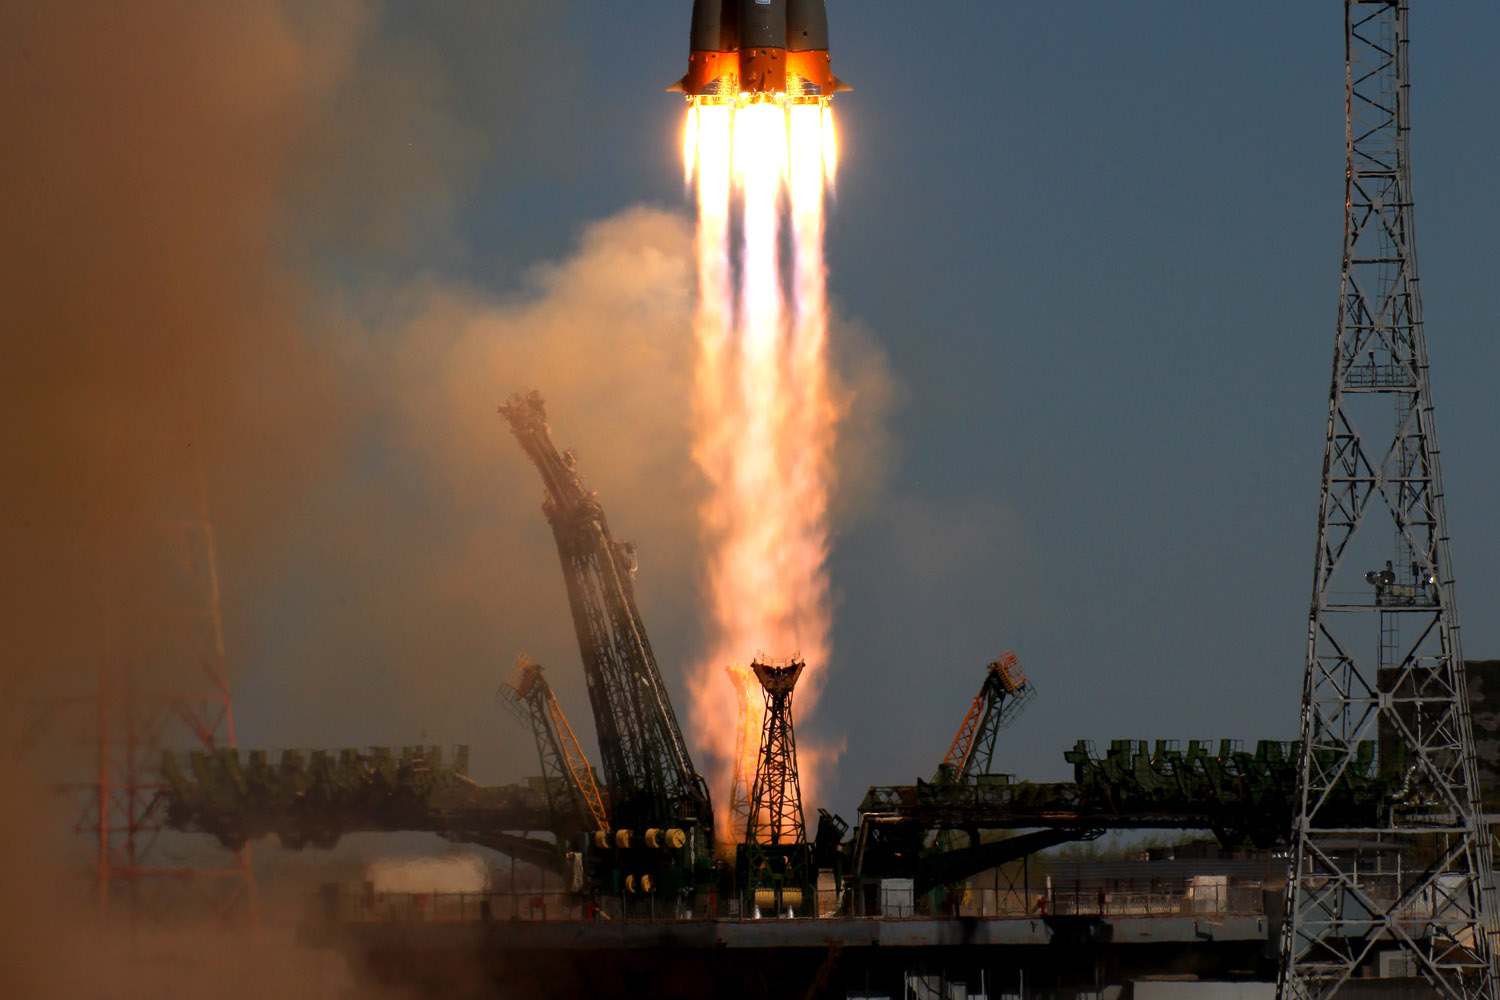 April 19, 2013. A Soyuz-2.1b carrier rocket, carrying a Bion-M satellite blasts off from a launch pad in the Russian leased Kazakhstan's Baikonur cosmodrome. Bion-M, part of the Russia's space program, is to conduct fundamental and applied research in space biology, physiology and biotechnology while in orbit, RIA-Novosti news agency reported.